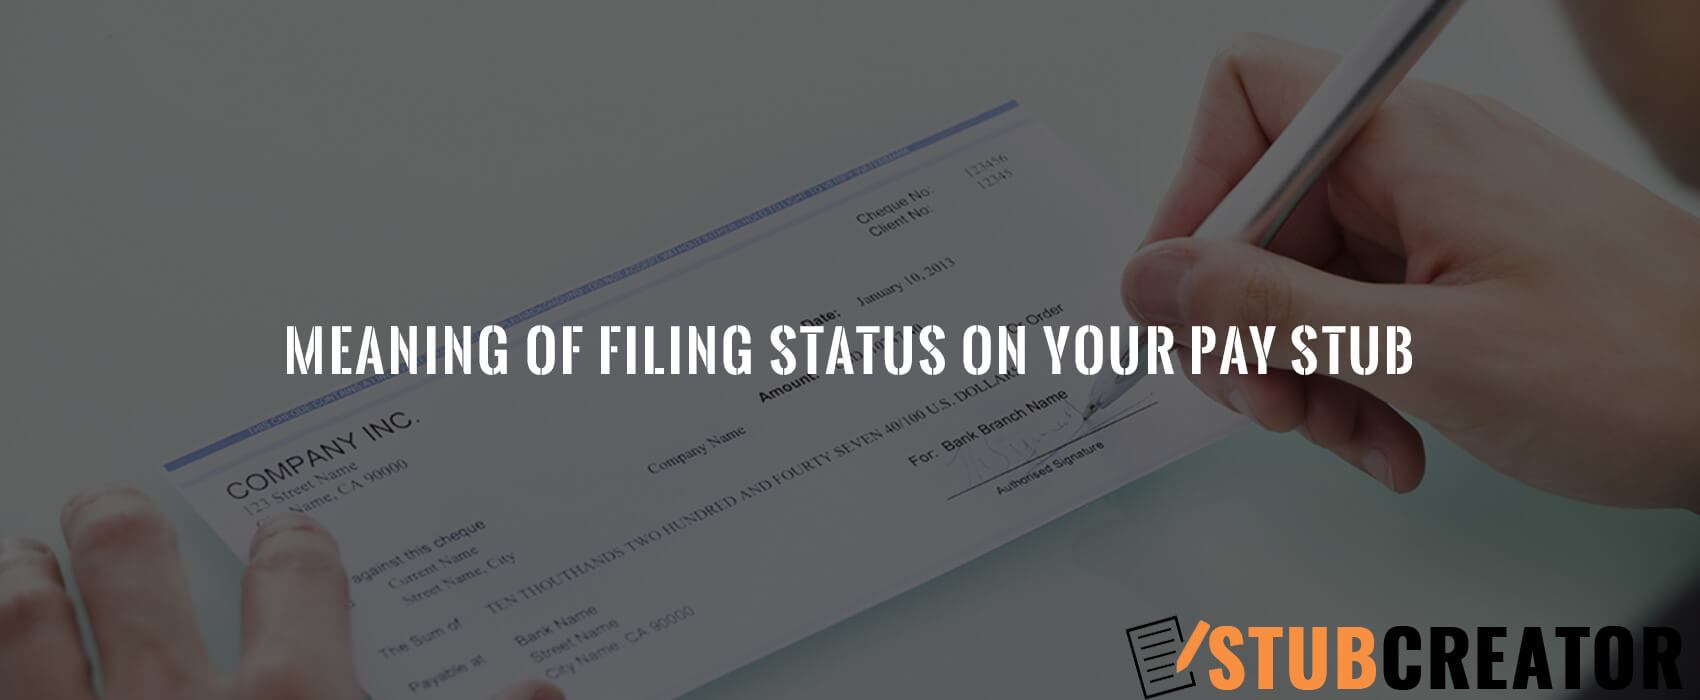 Meaning of filing status on your pay stub